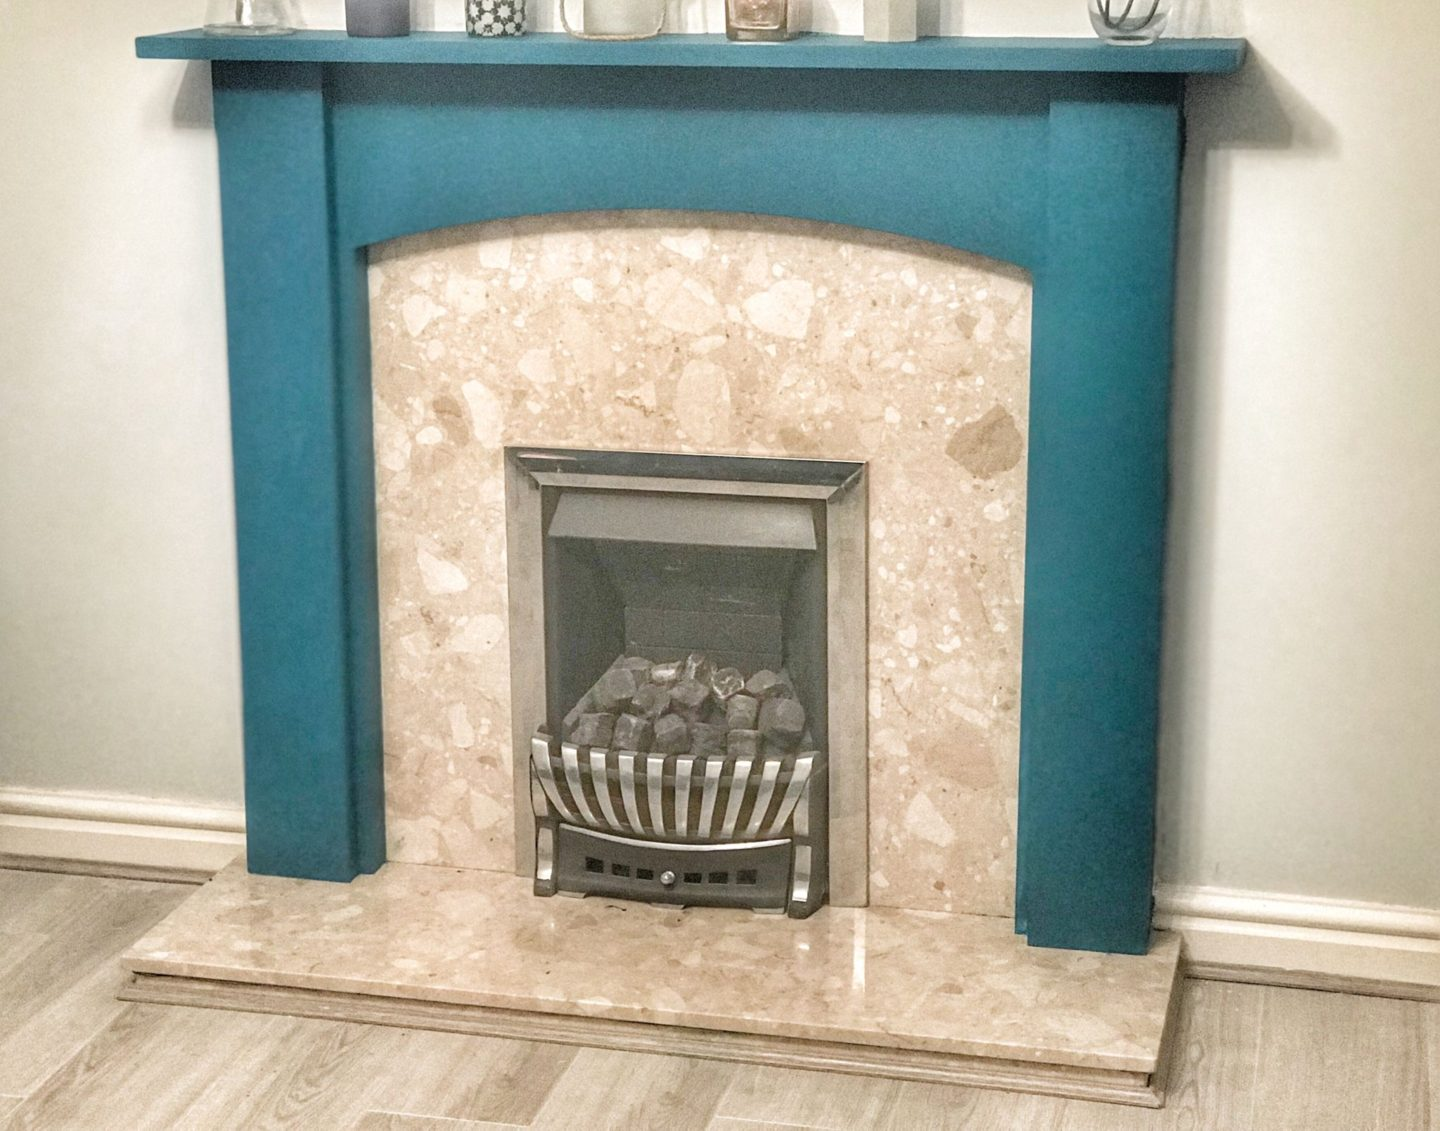 the finished result: the fireplace's surround is now teal